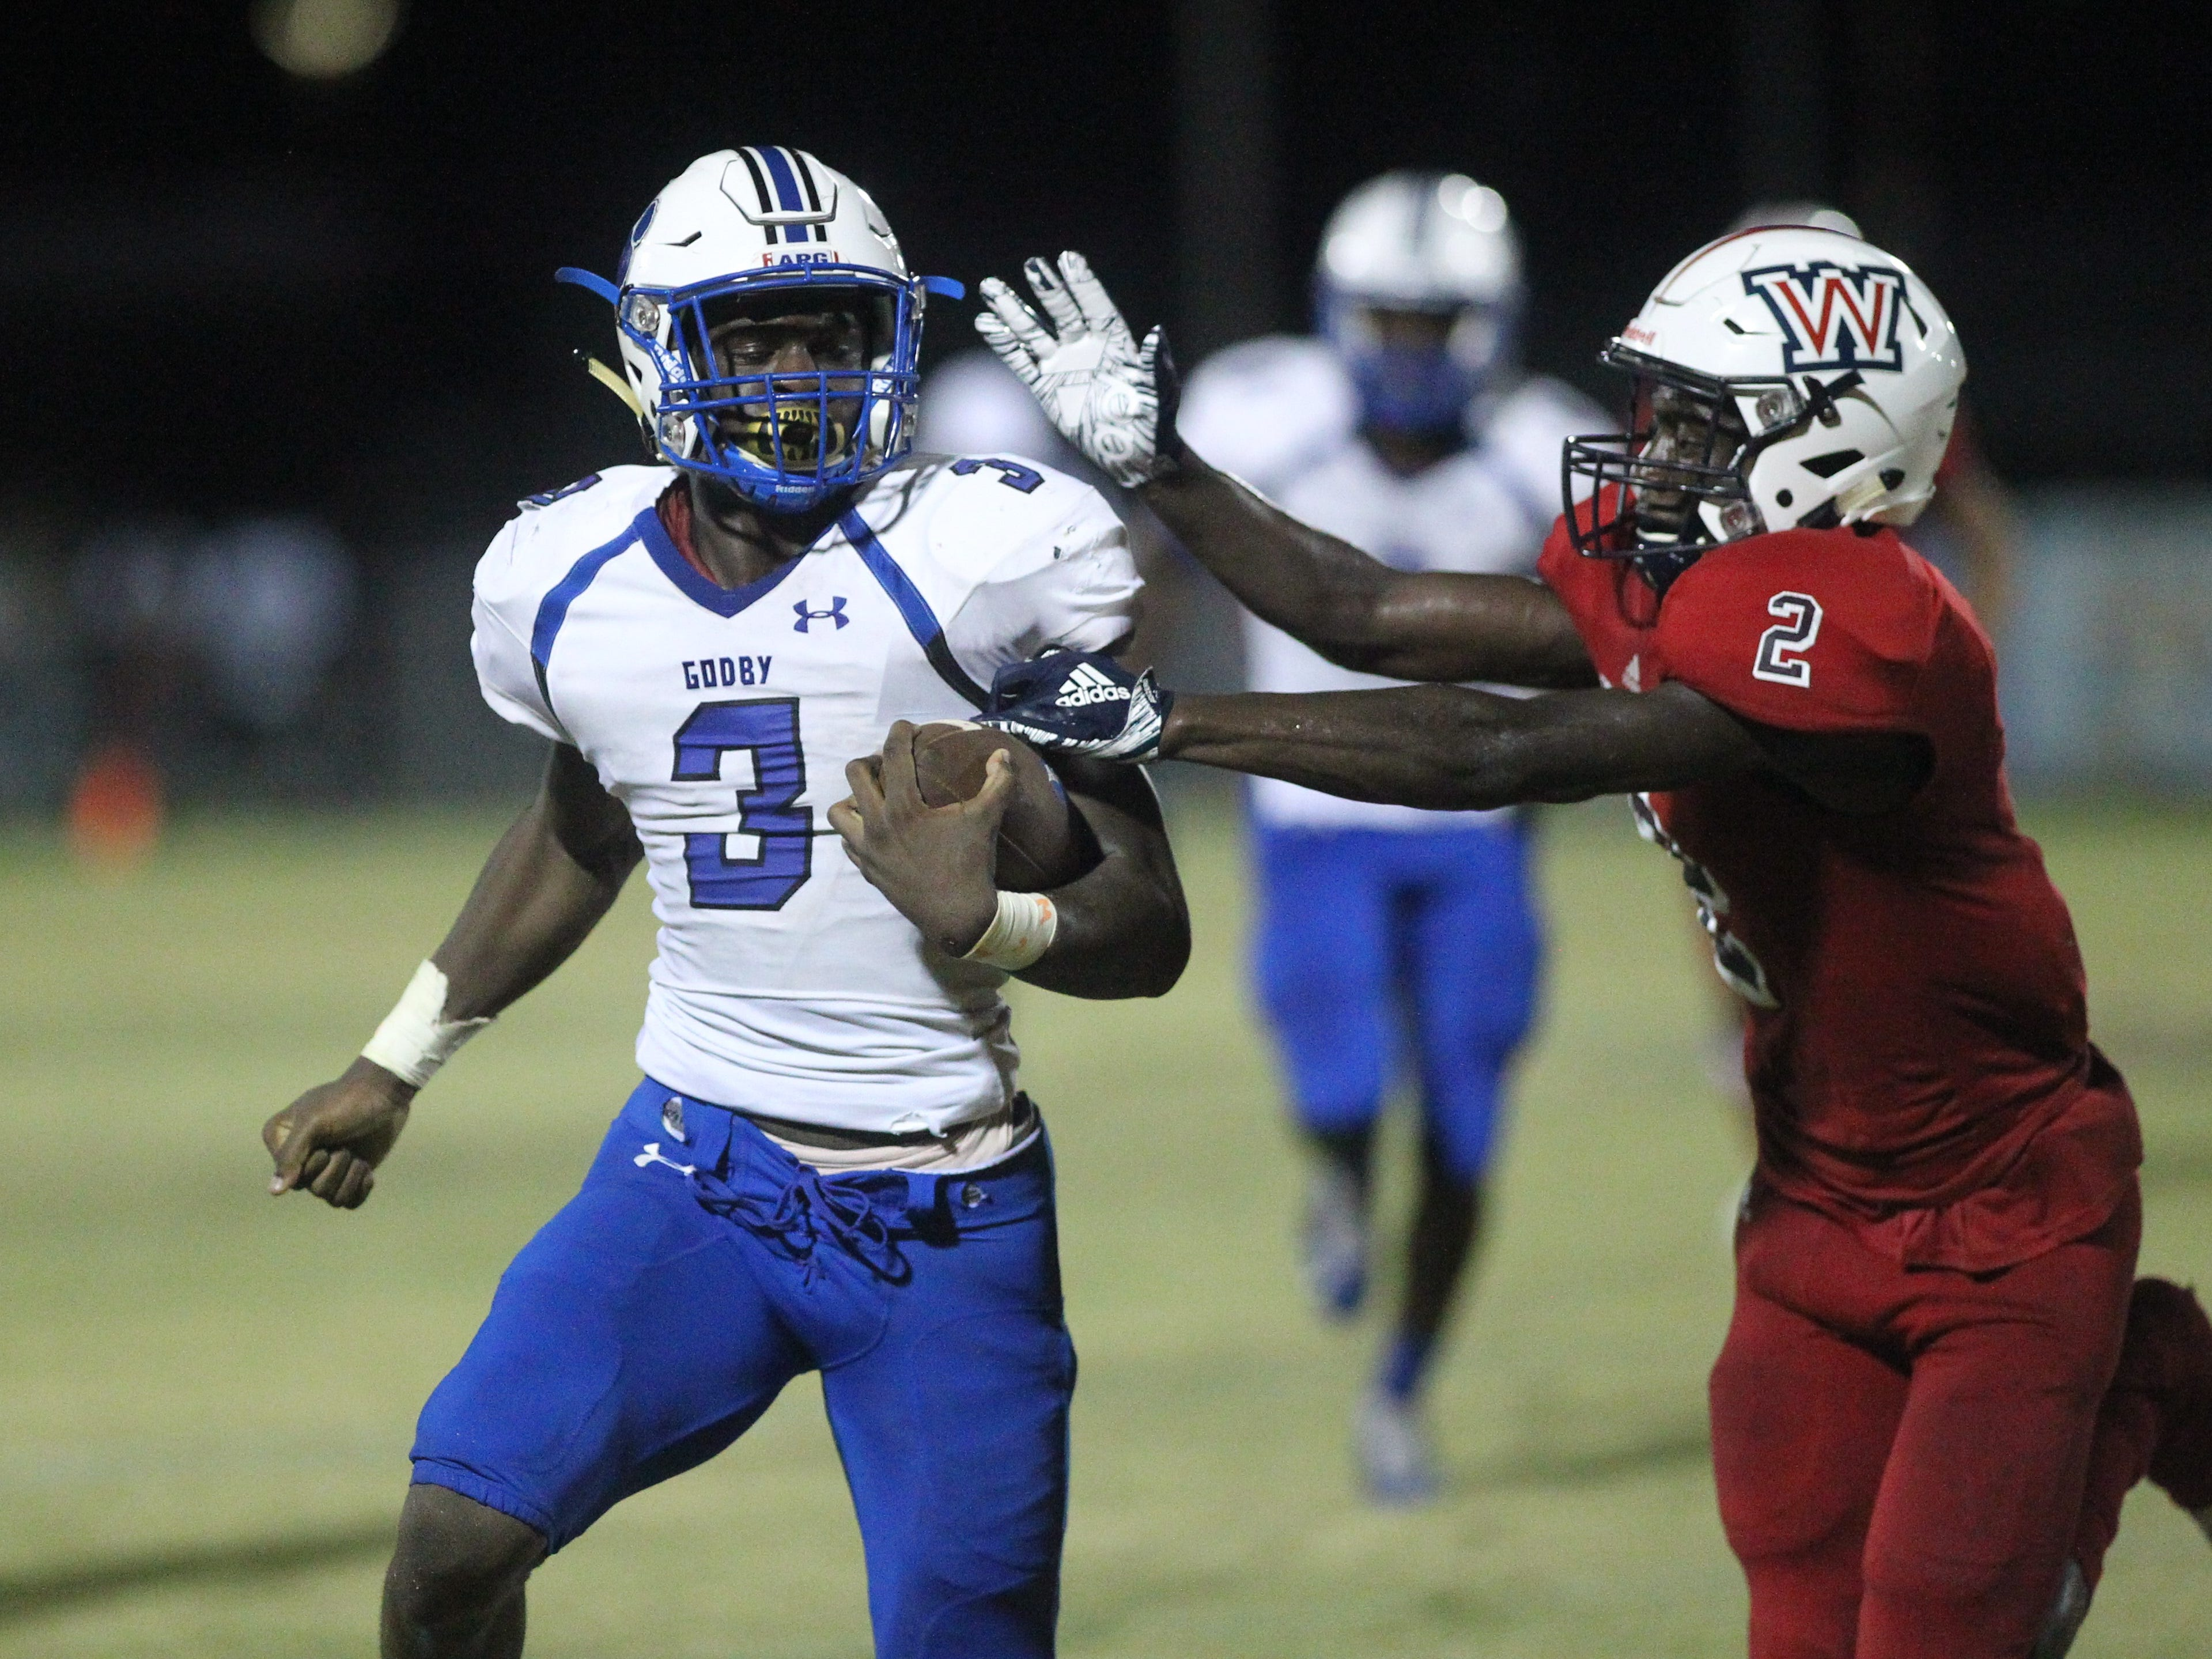 Godby running back Jaquez Yant tries to avoid a tackle by Wakulla's Jeremy Harvey as the Cougars beat Wakulla 37-13 on Friday night.